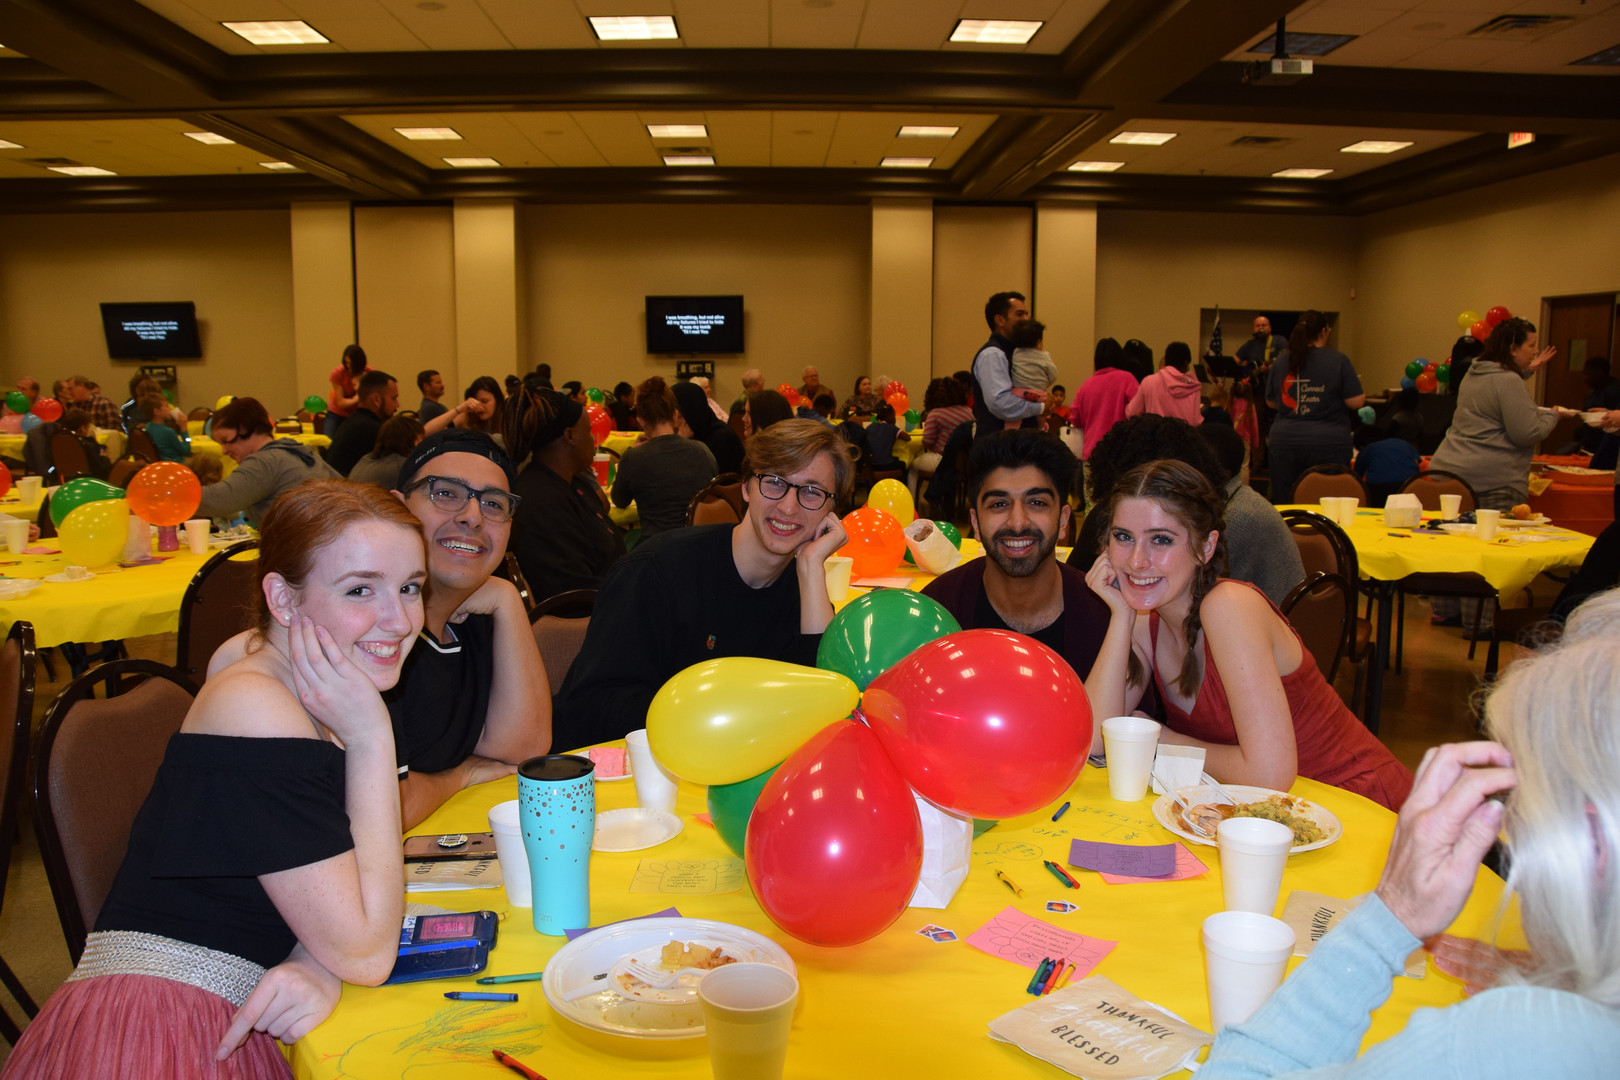 Musical chairs (and table) - members of the choir feast.